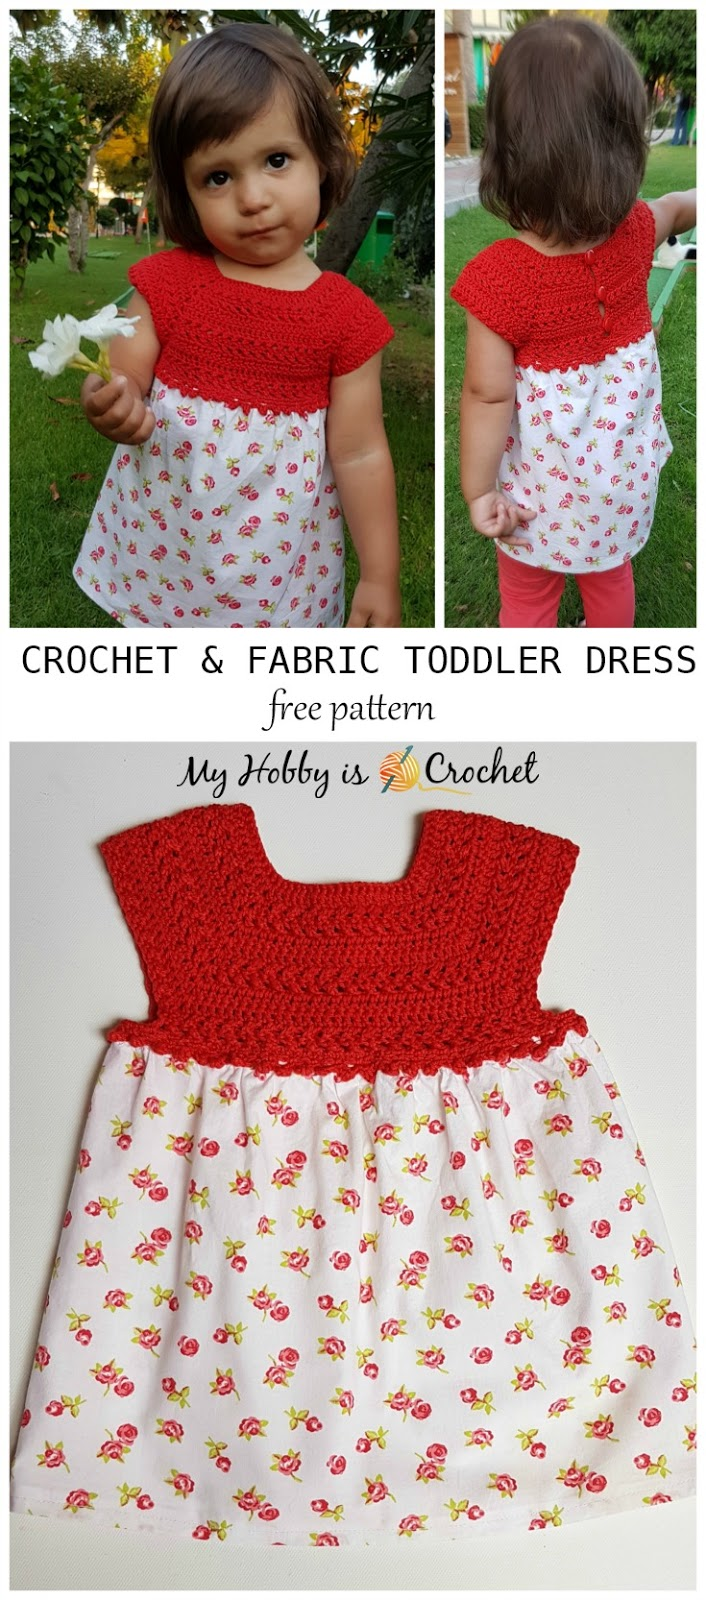 Crochet and Fabric Toddler Dress Elisa Free Pattern